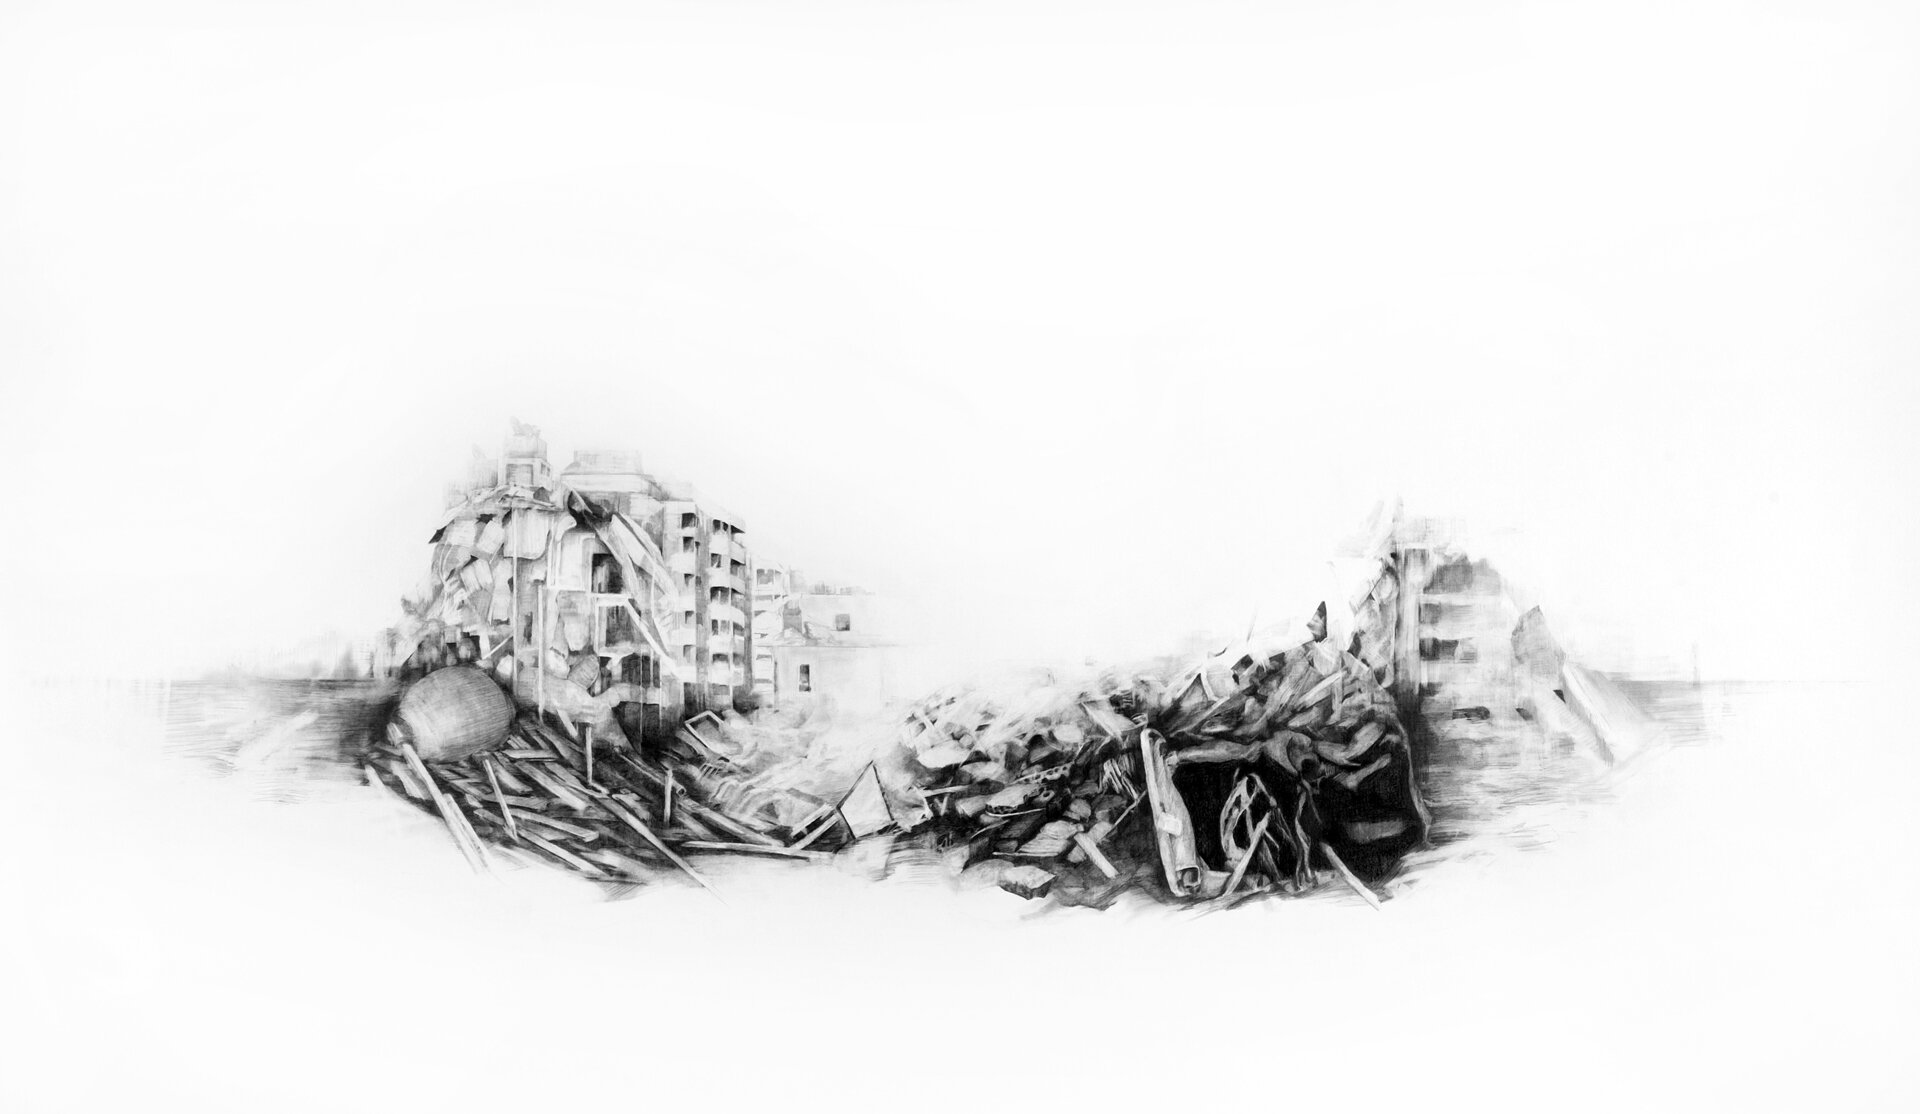 Rubble,  2006, will be included in the exhibition  The Beginning of Everything  at the Katherine E. Nash gallery.